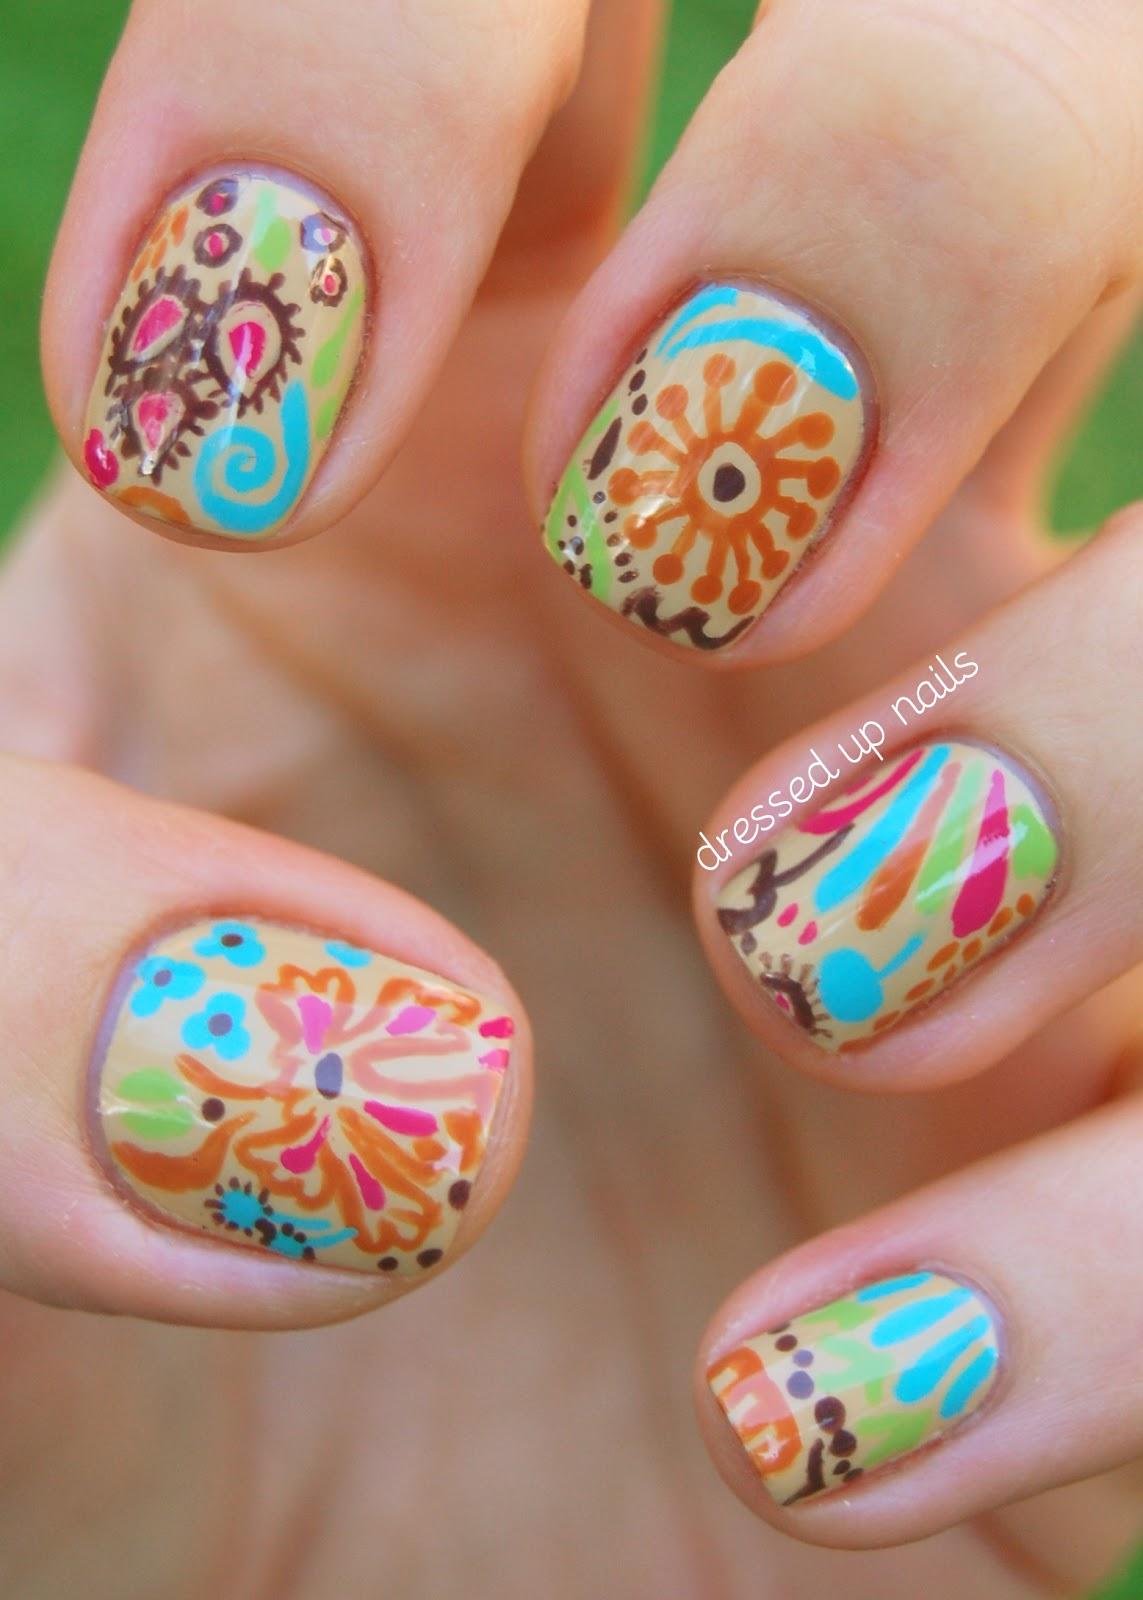 Hippy Nails By Whitney From Dressed Up Nails Redditlaqueristas